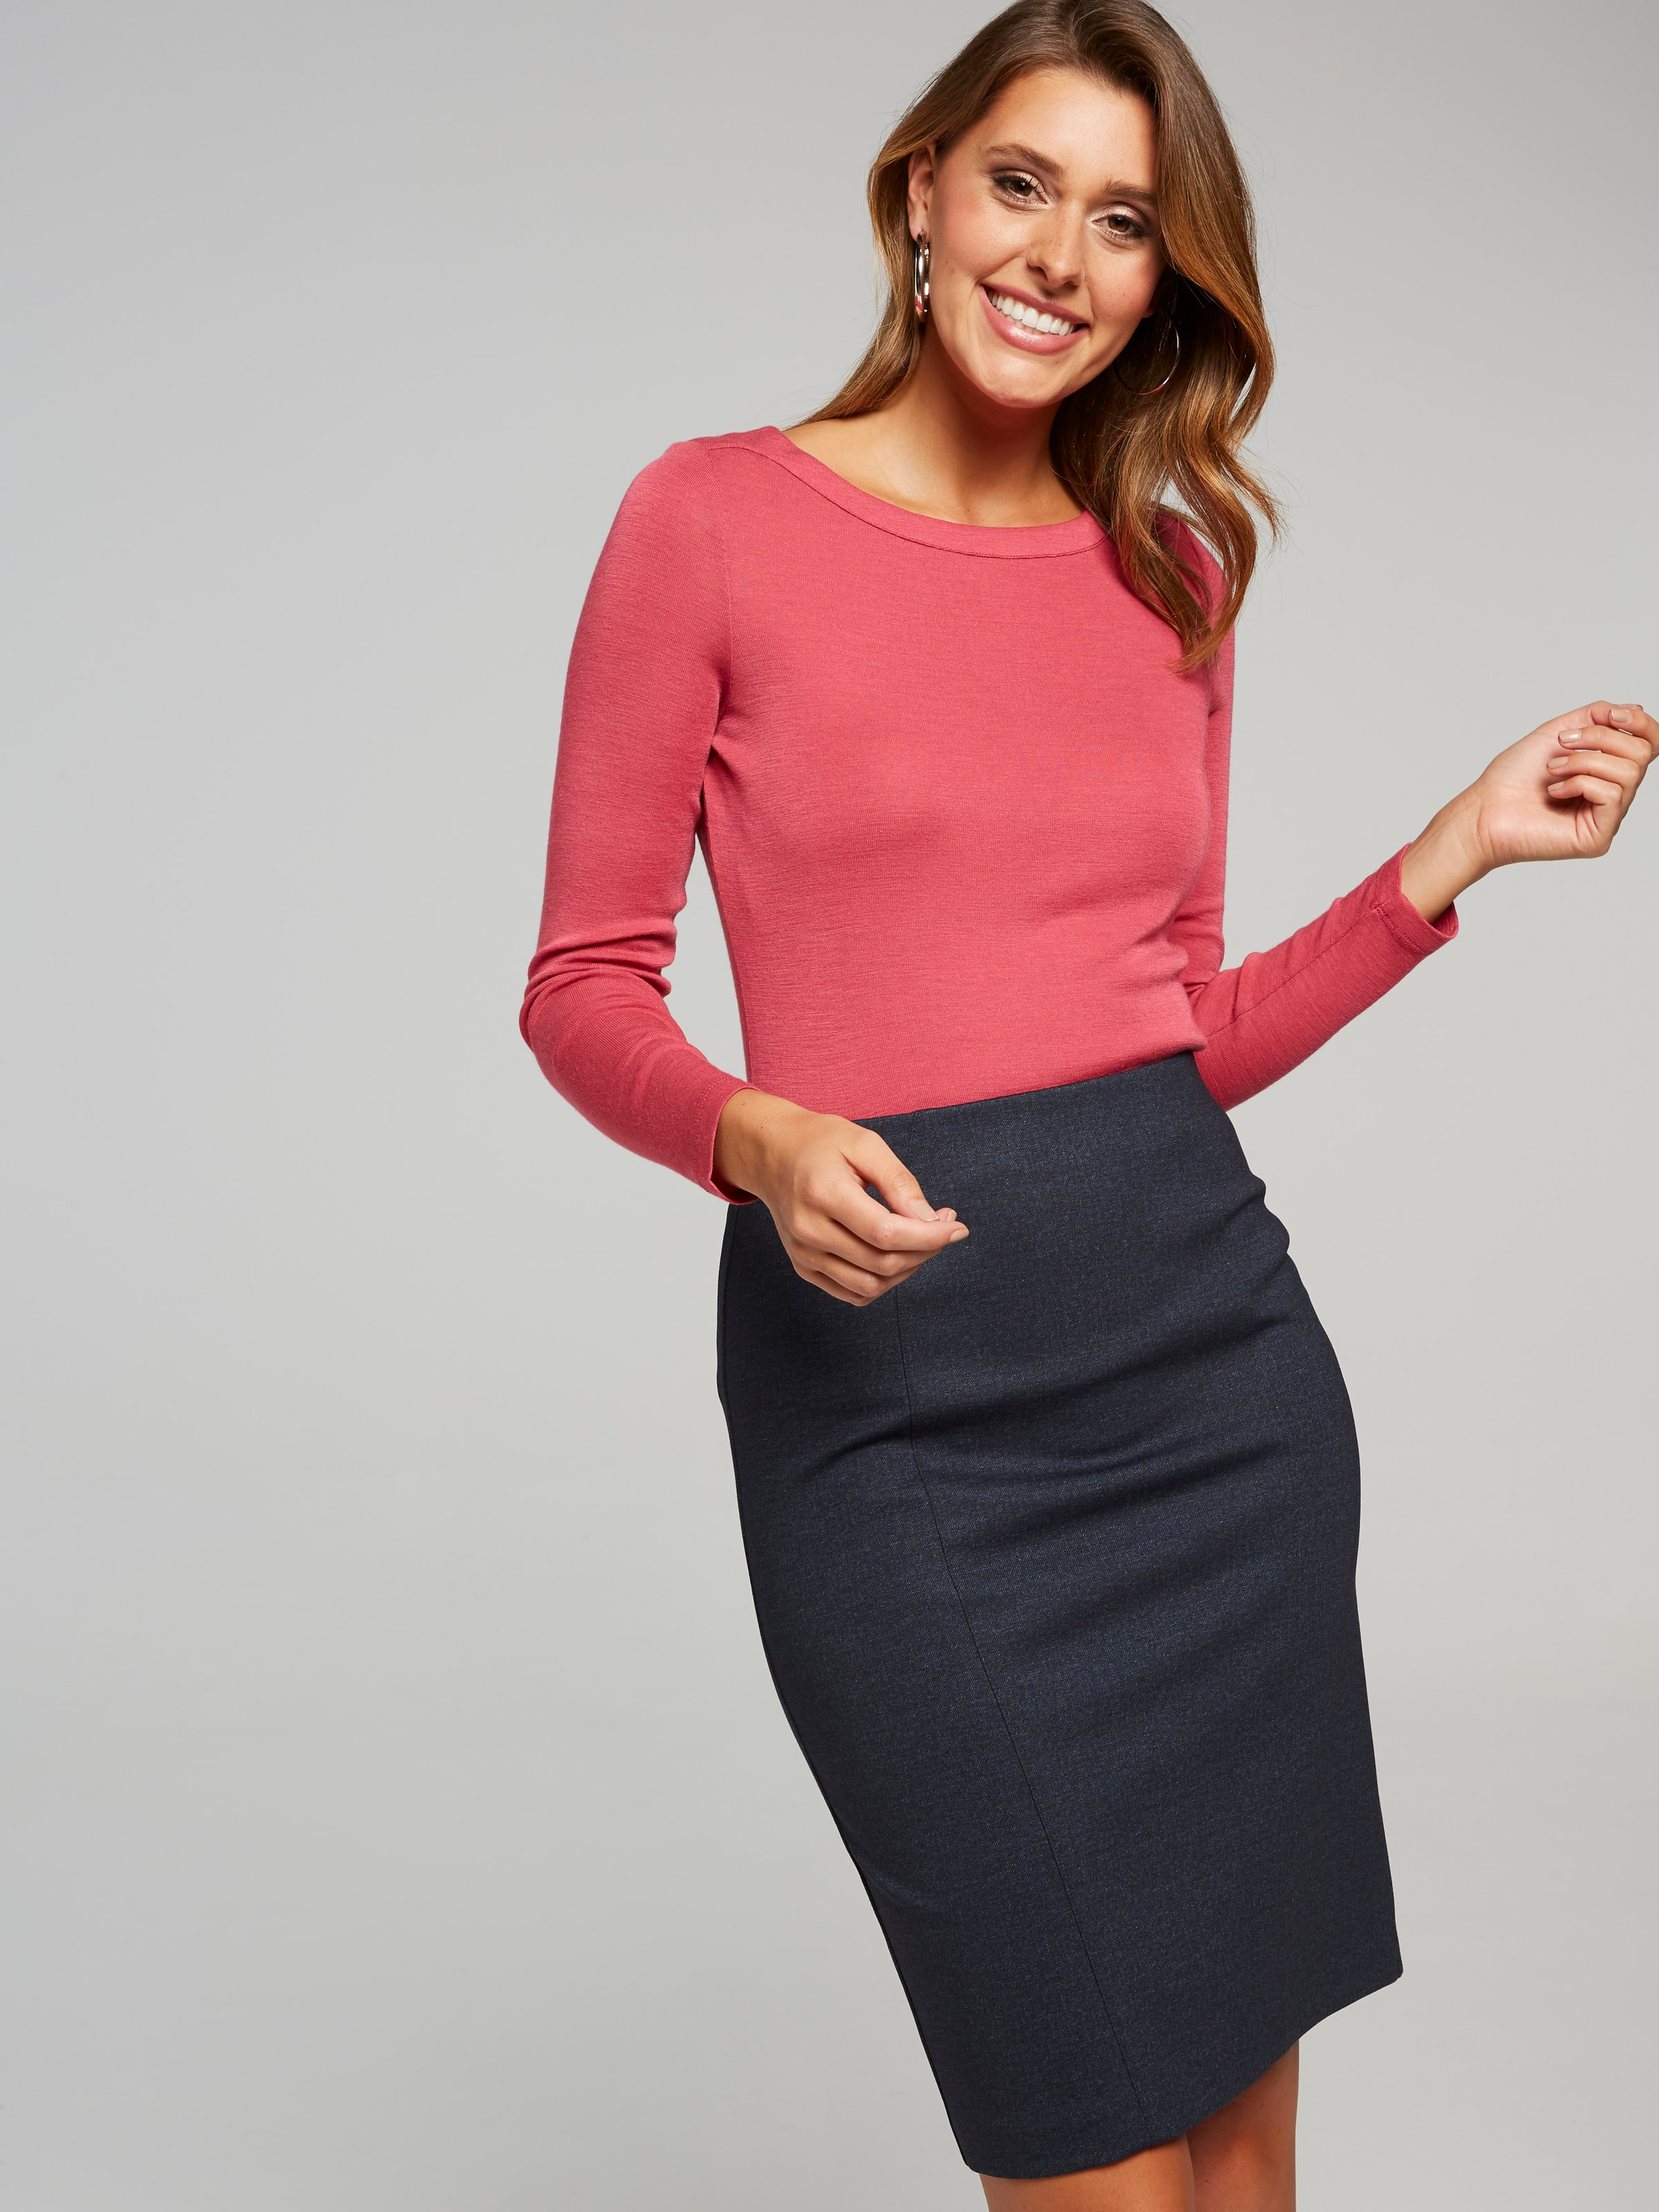 Part Of Our Core Ponte Range, The Ponte Pencil Skirt In This New Indigo Colour Way, Features A Slim Pencil Silhouette, With A Beautiful Soft Hand Feel Fabrication And A Pull On Elastic Waist For Extra Comfort. This Is A Staple Piece For All Wardrobes.(Printed Indigo, 6)